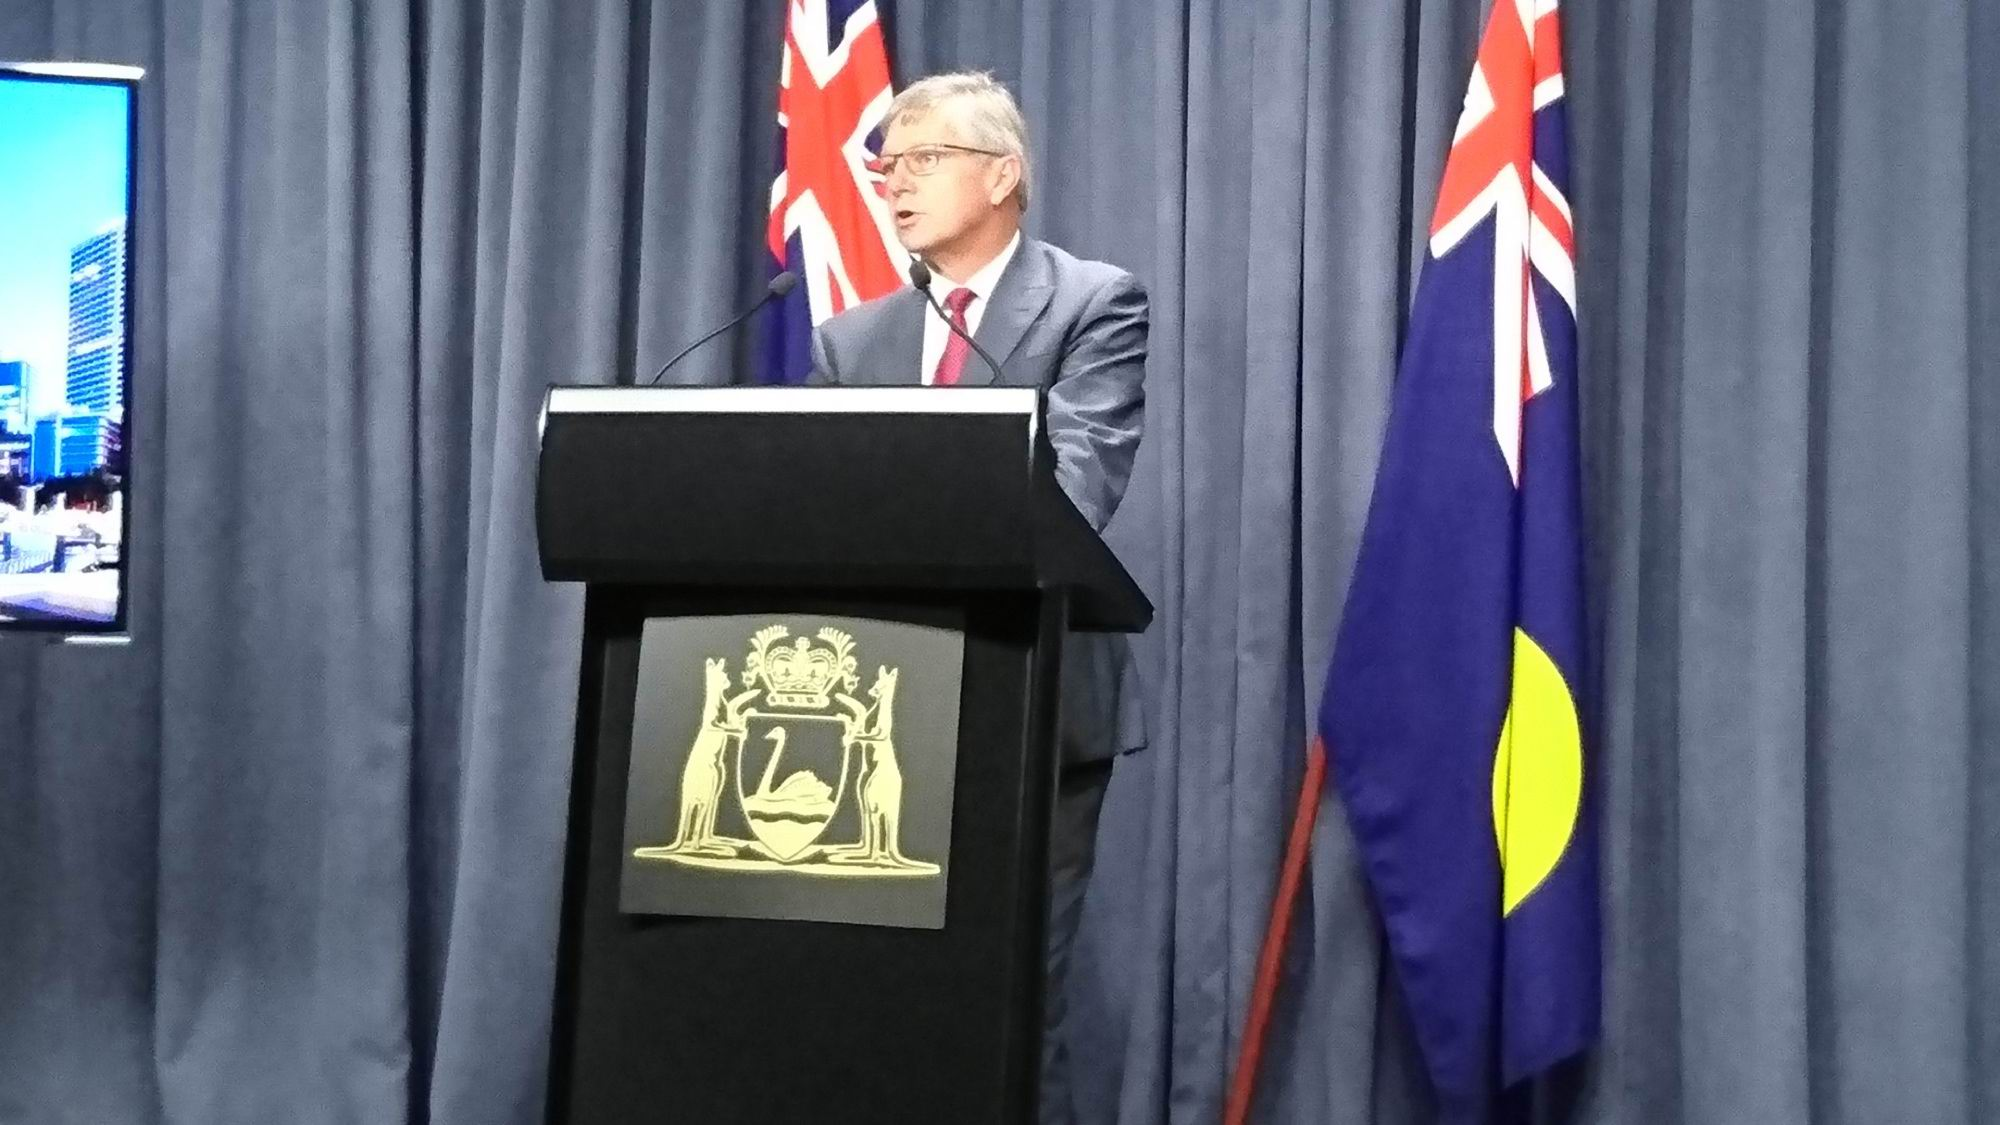 Transport Minister Bill Marmion,